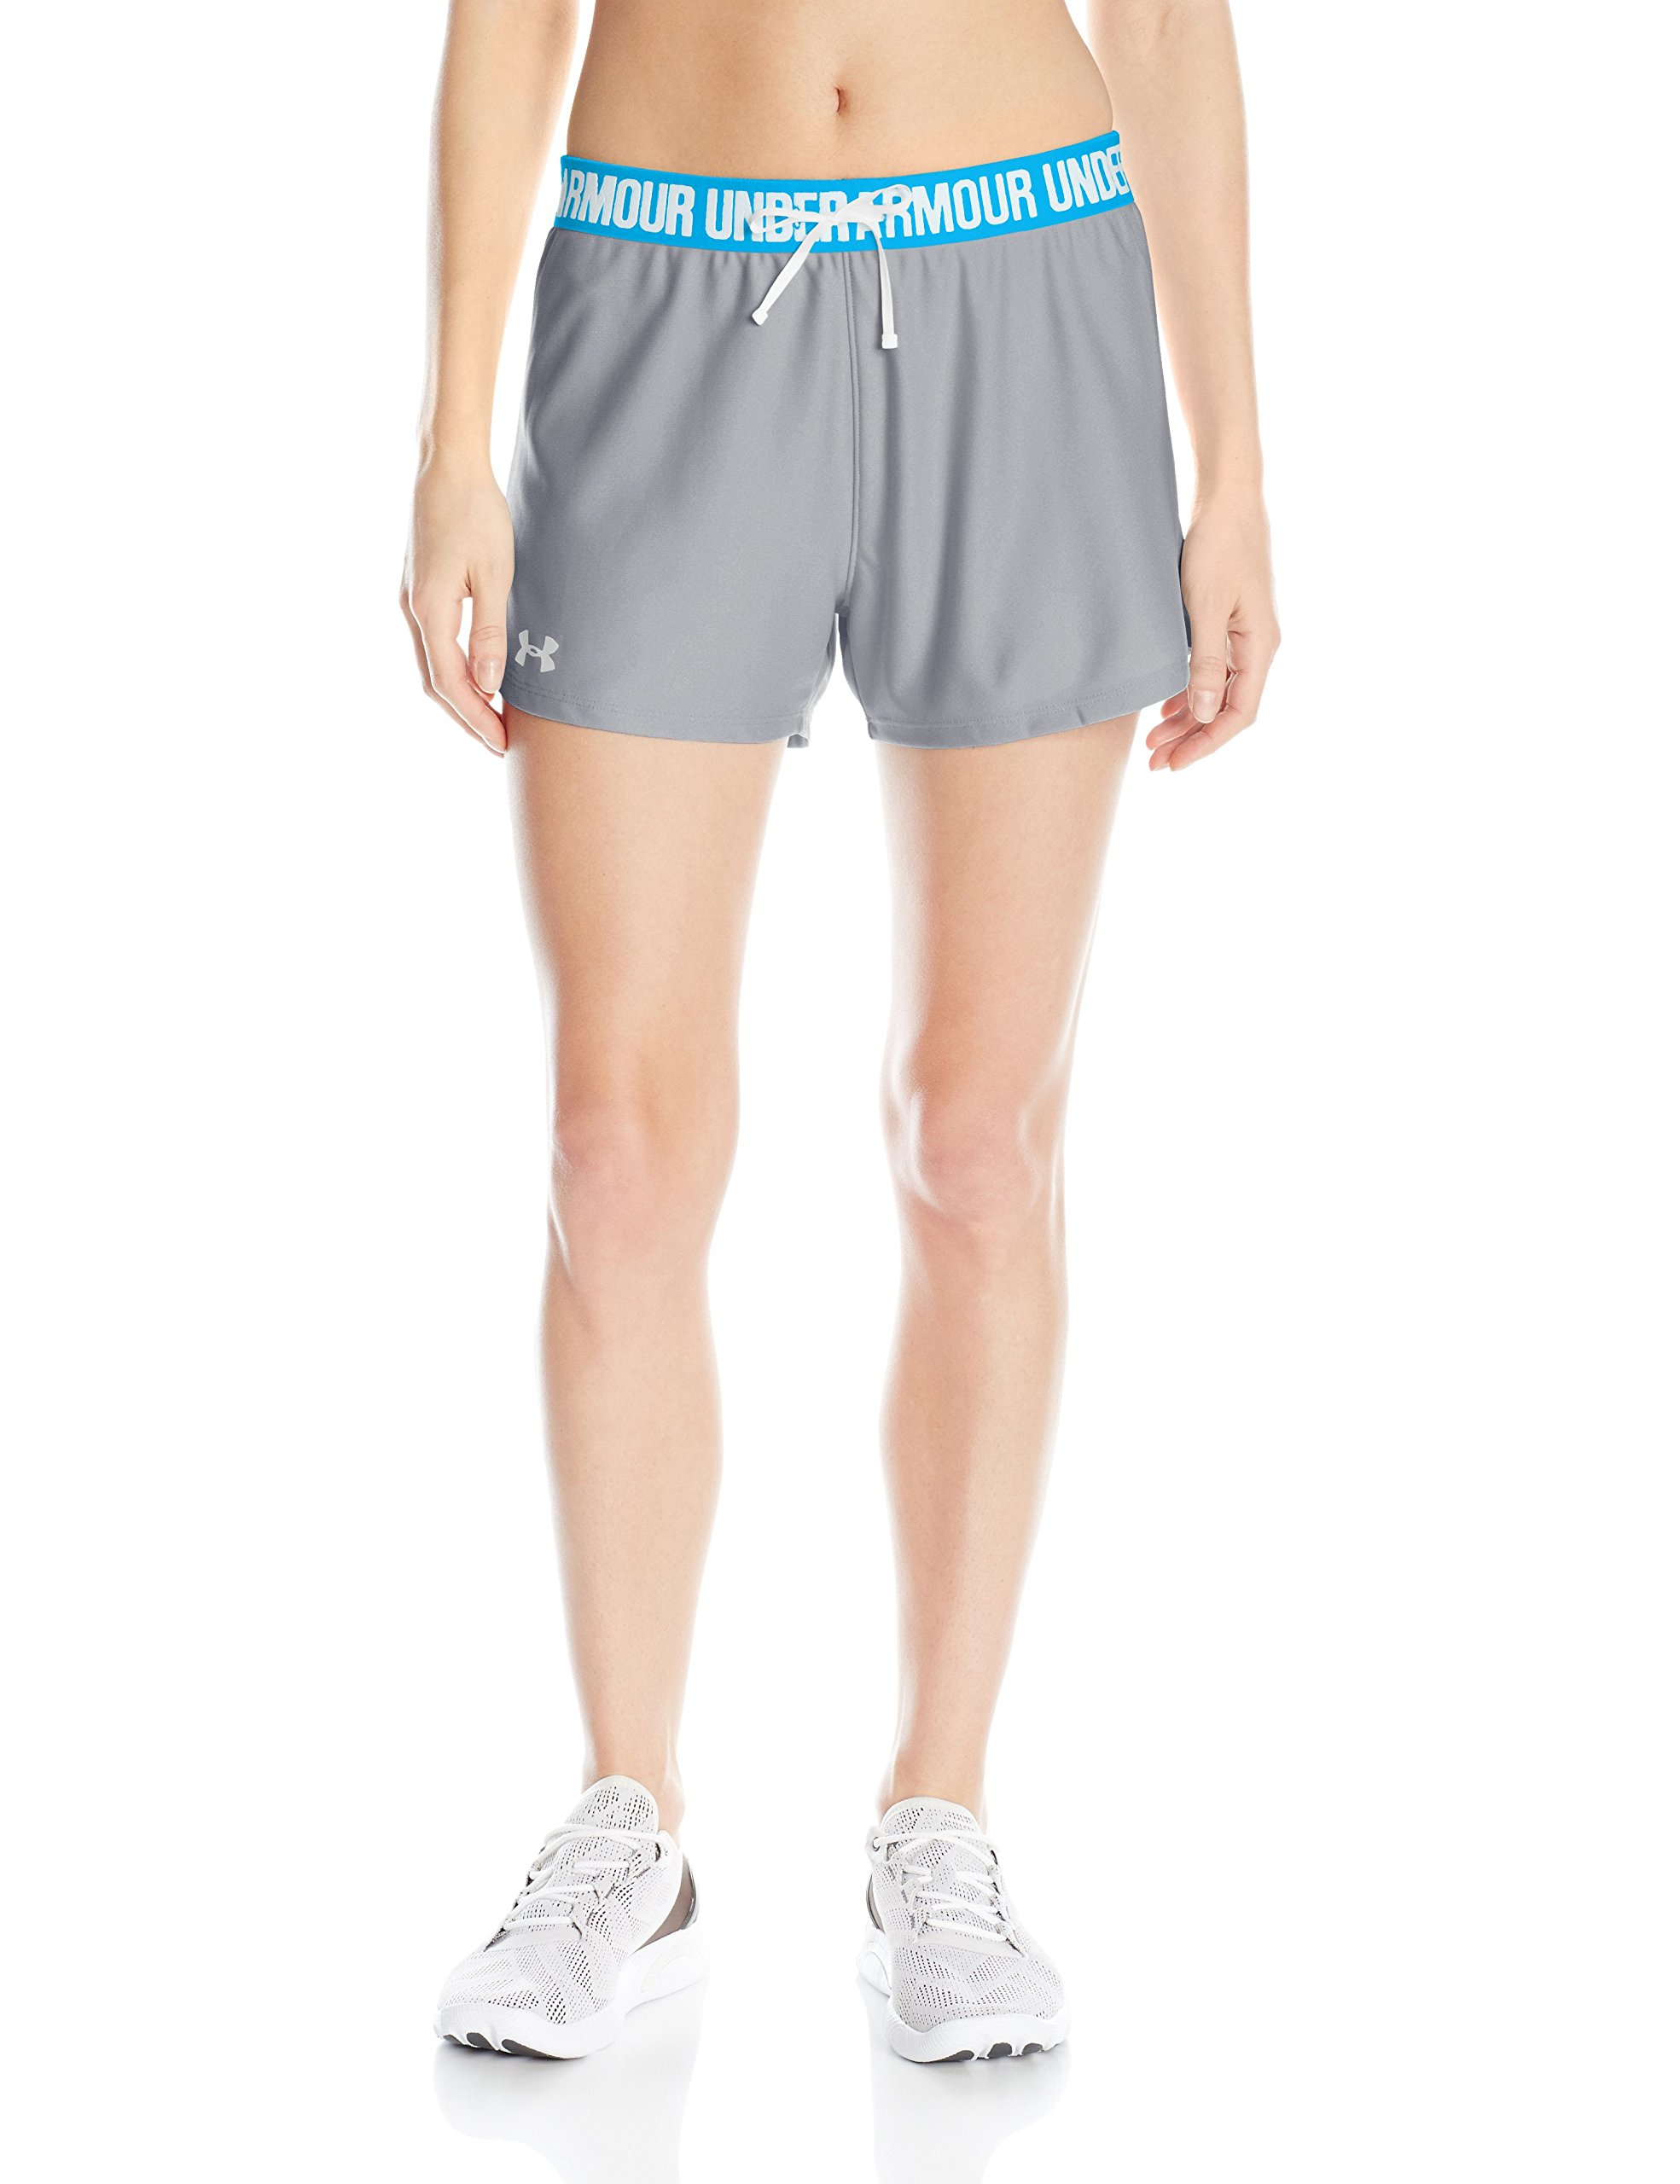 Under Armour Women's Play Up Shorts, Steel (035)/Metallic Silver, Small by Under Armour